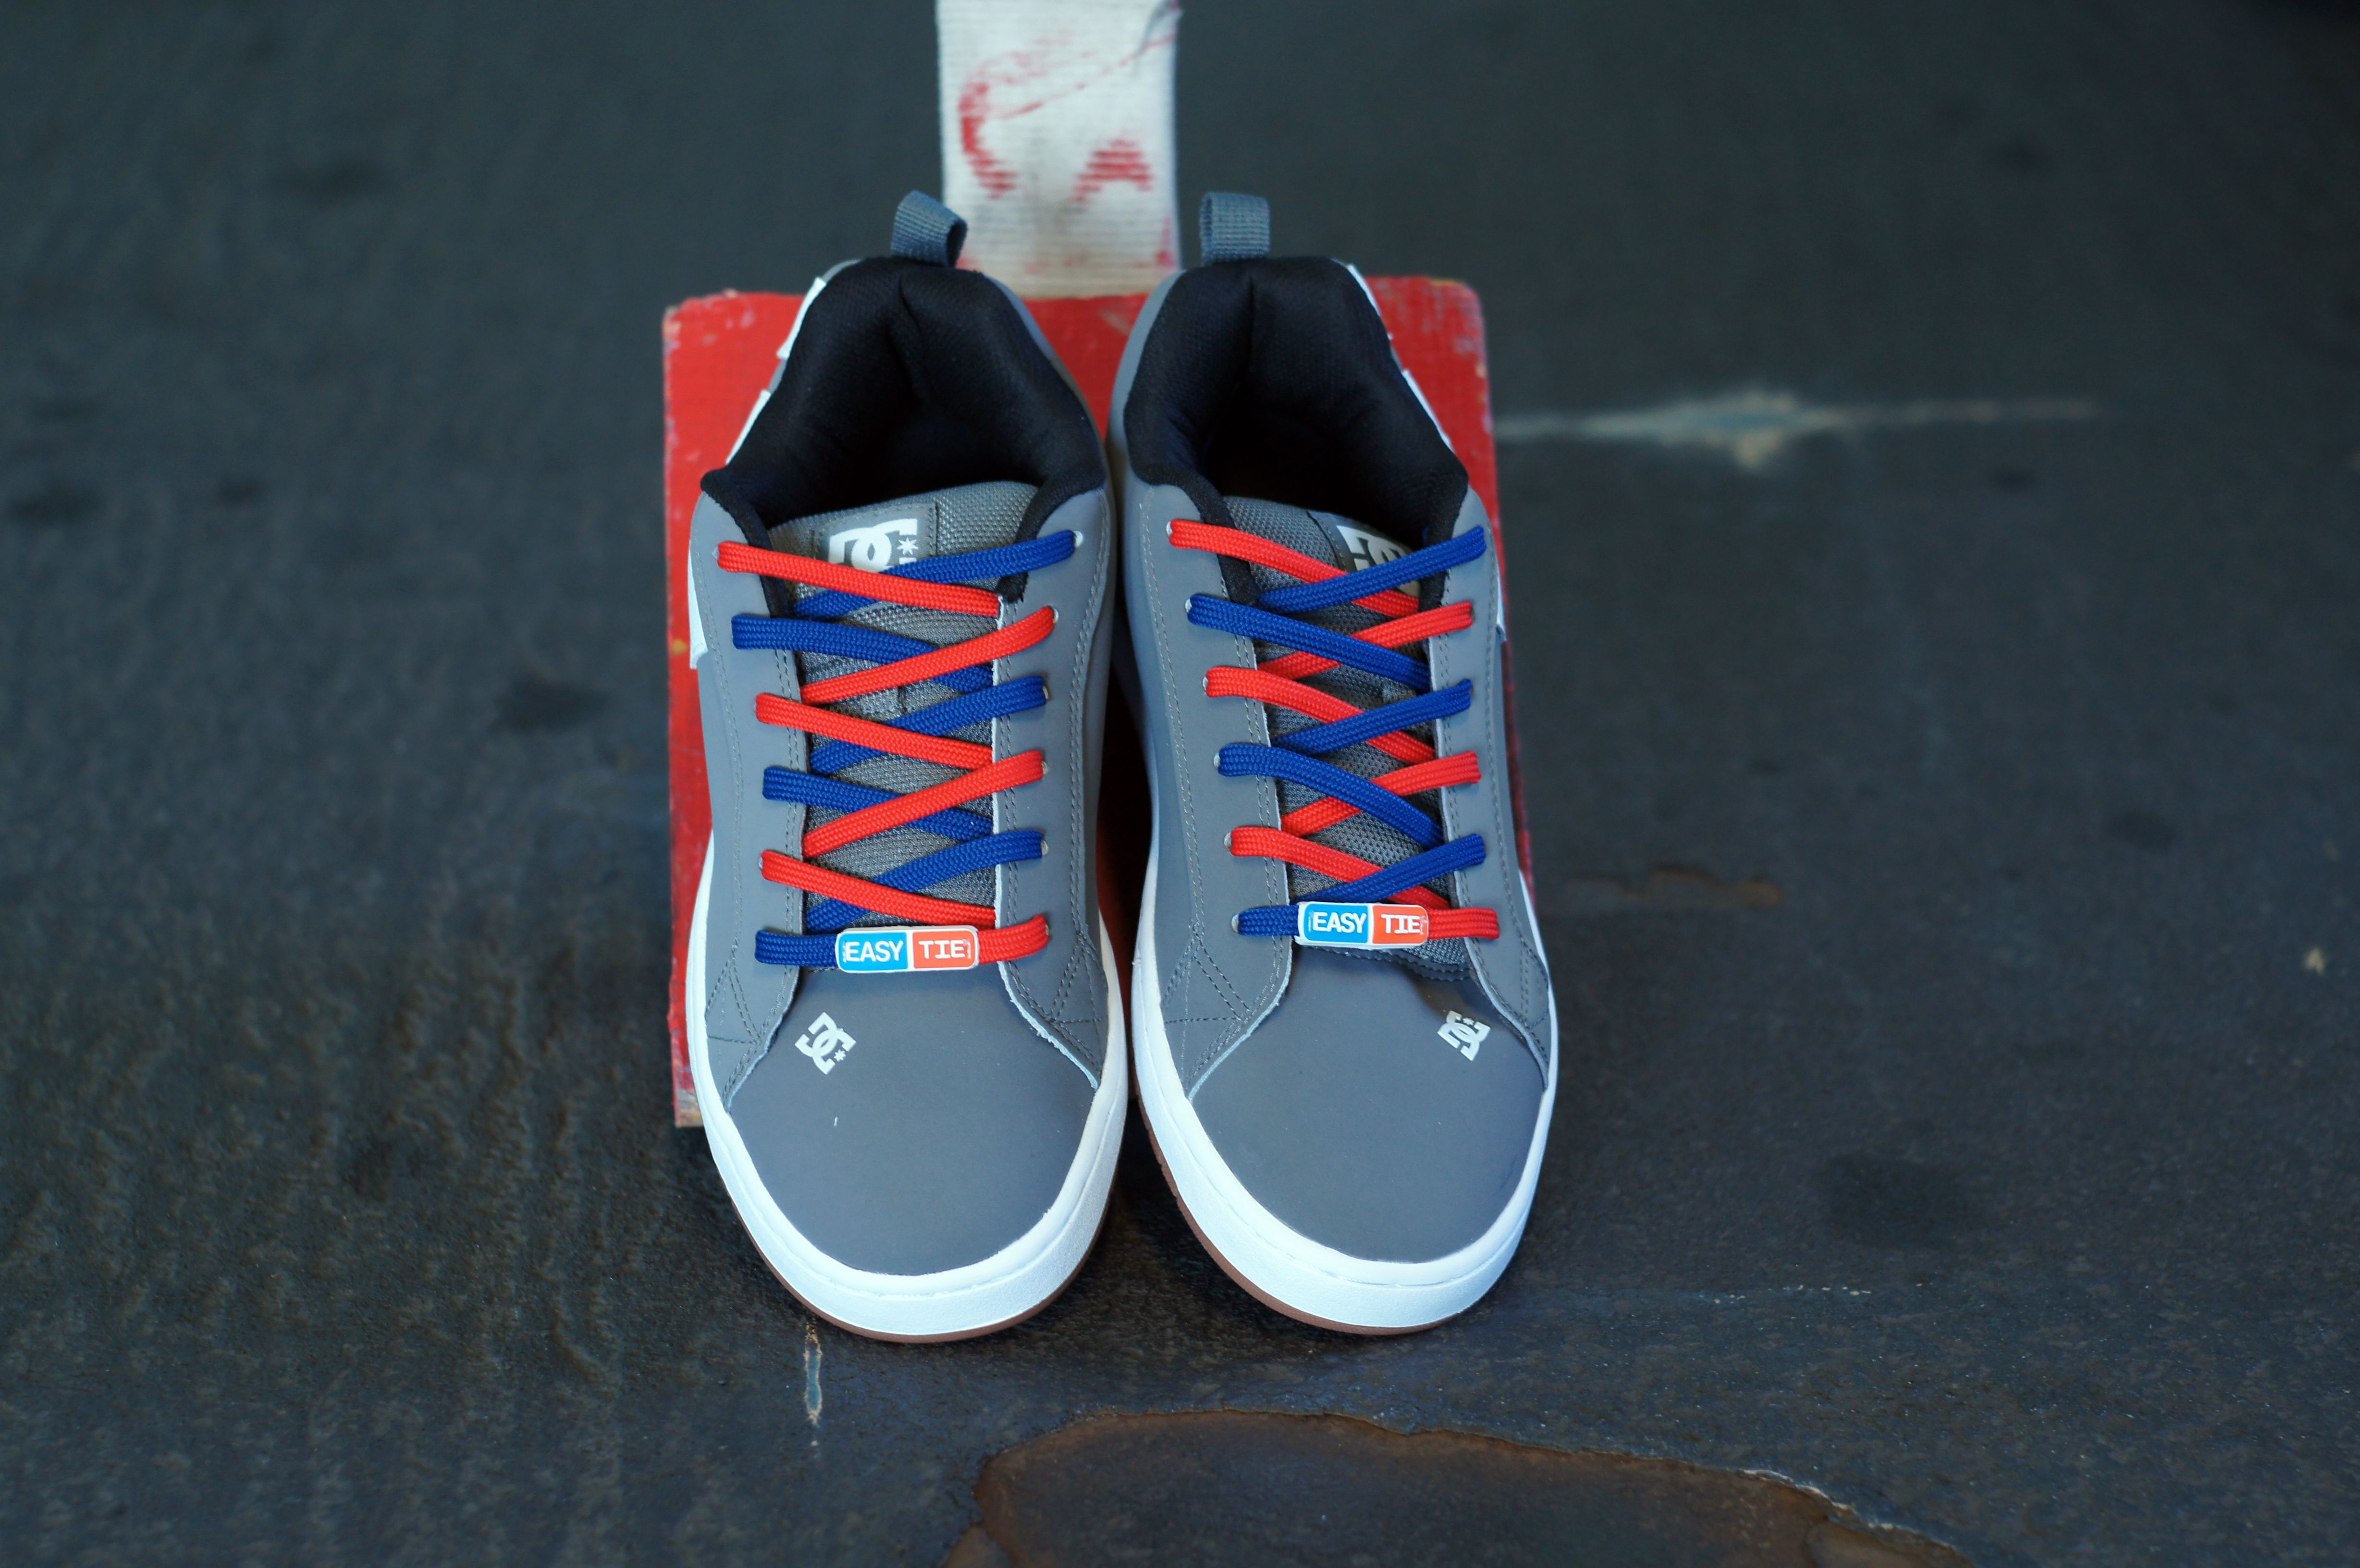 official site entire collection fashion styles Easy Tie Shoelaces | Tie shoelaces, Tie, Shoes